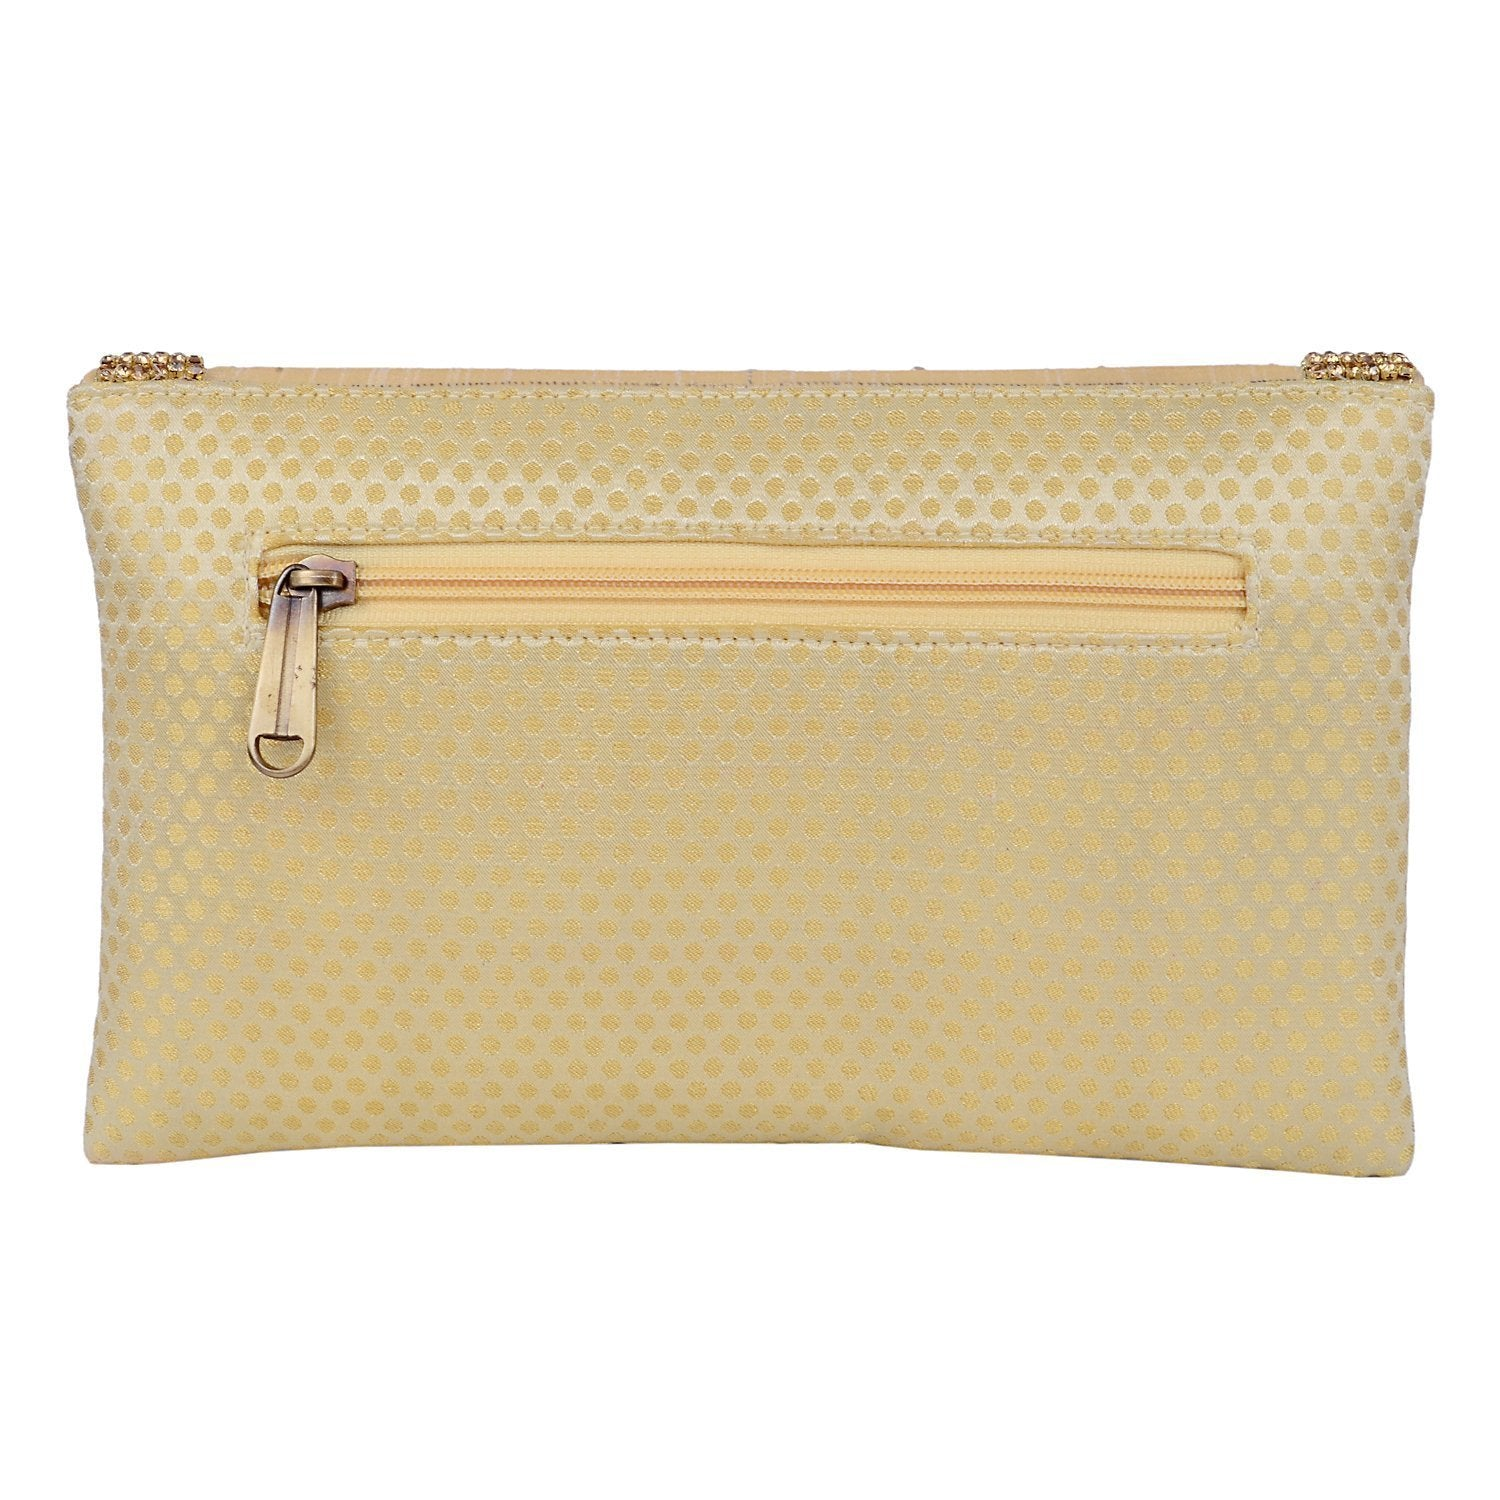 Ethnic Embroidery Clutch (Gold) - Bagaholics Gift